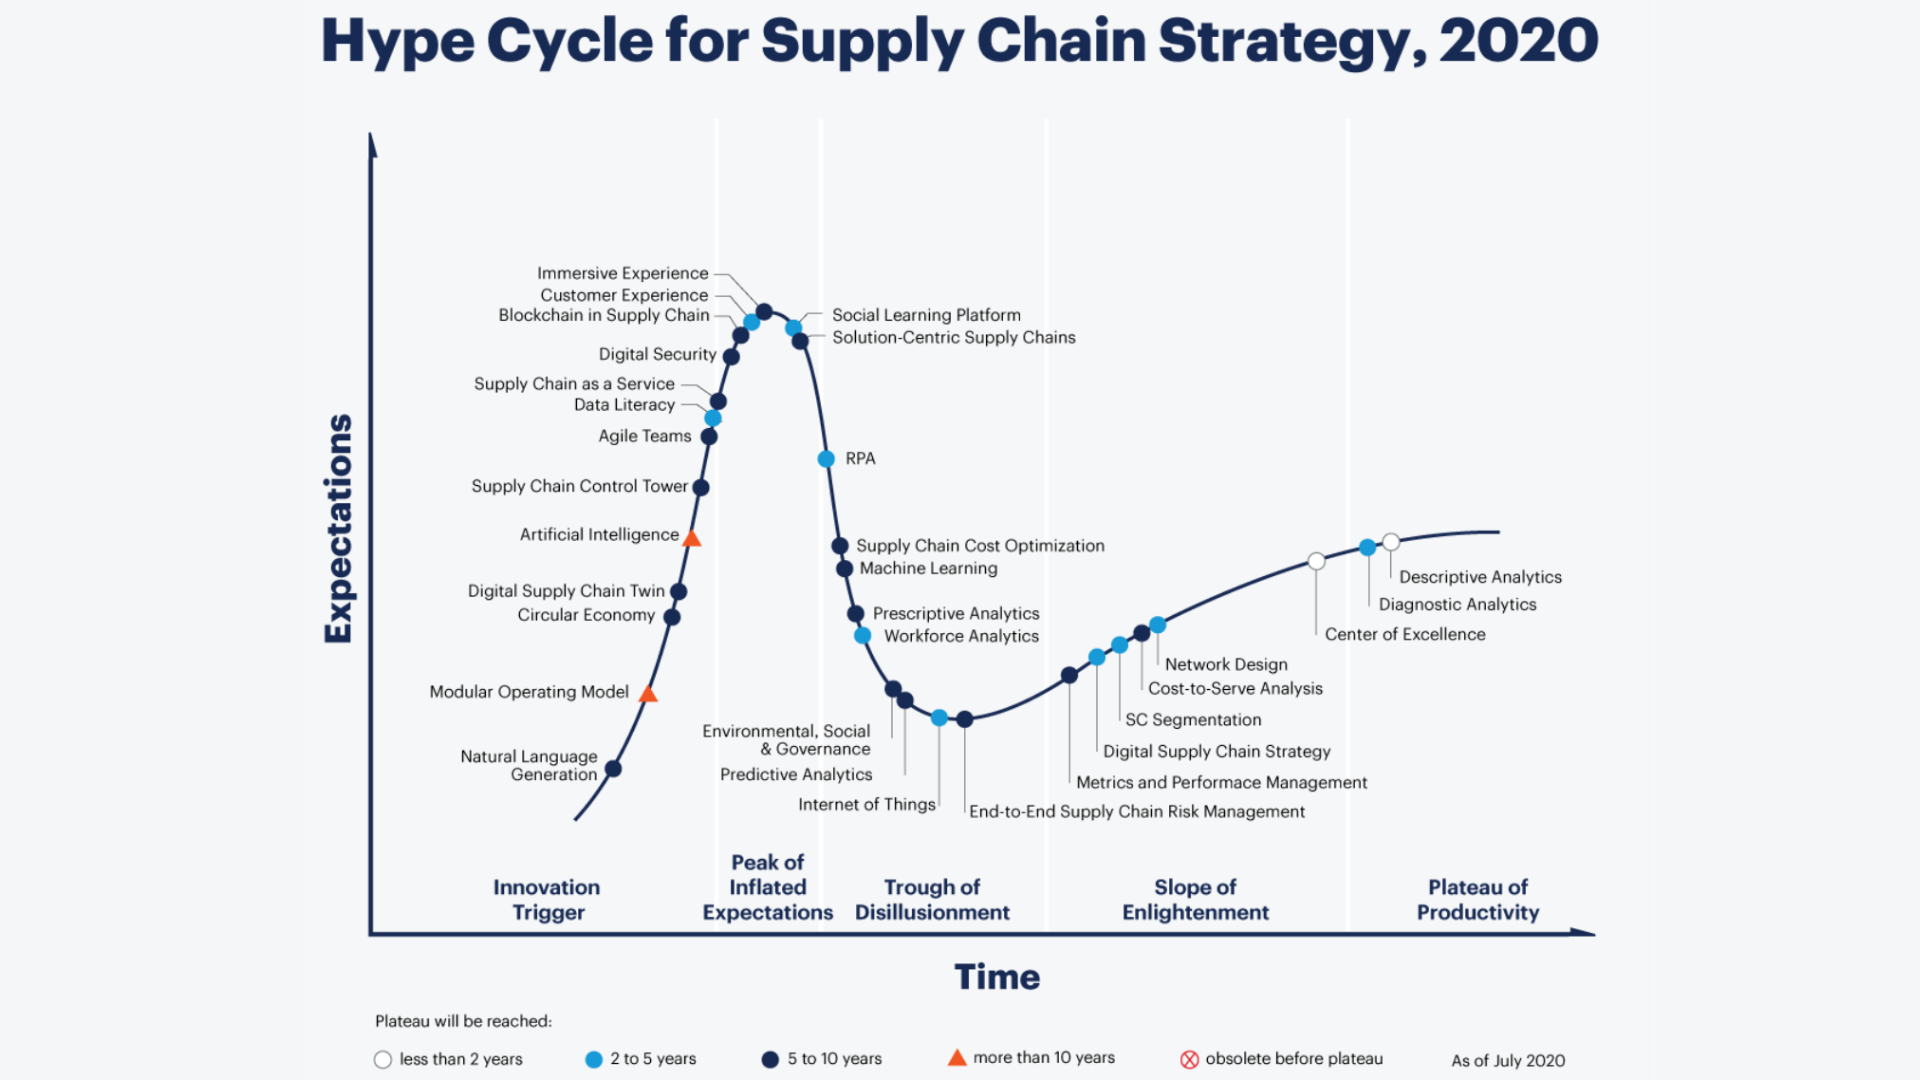 Hype-Cycle chart